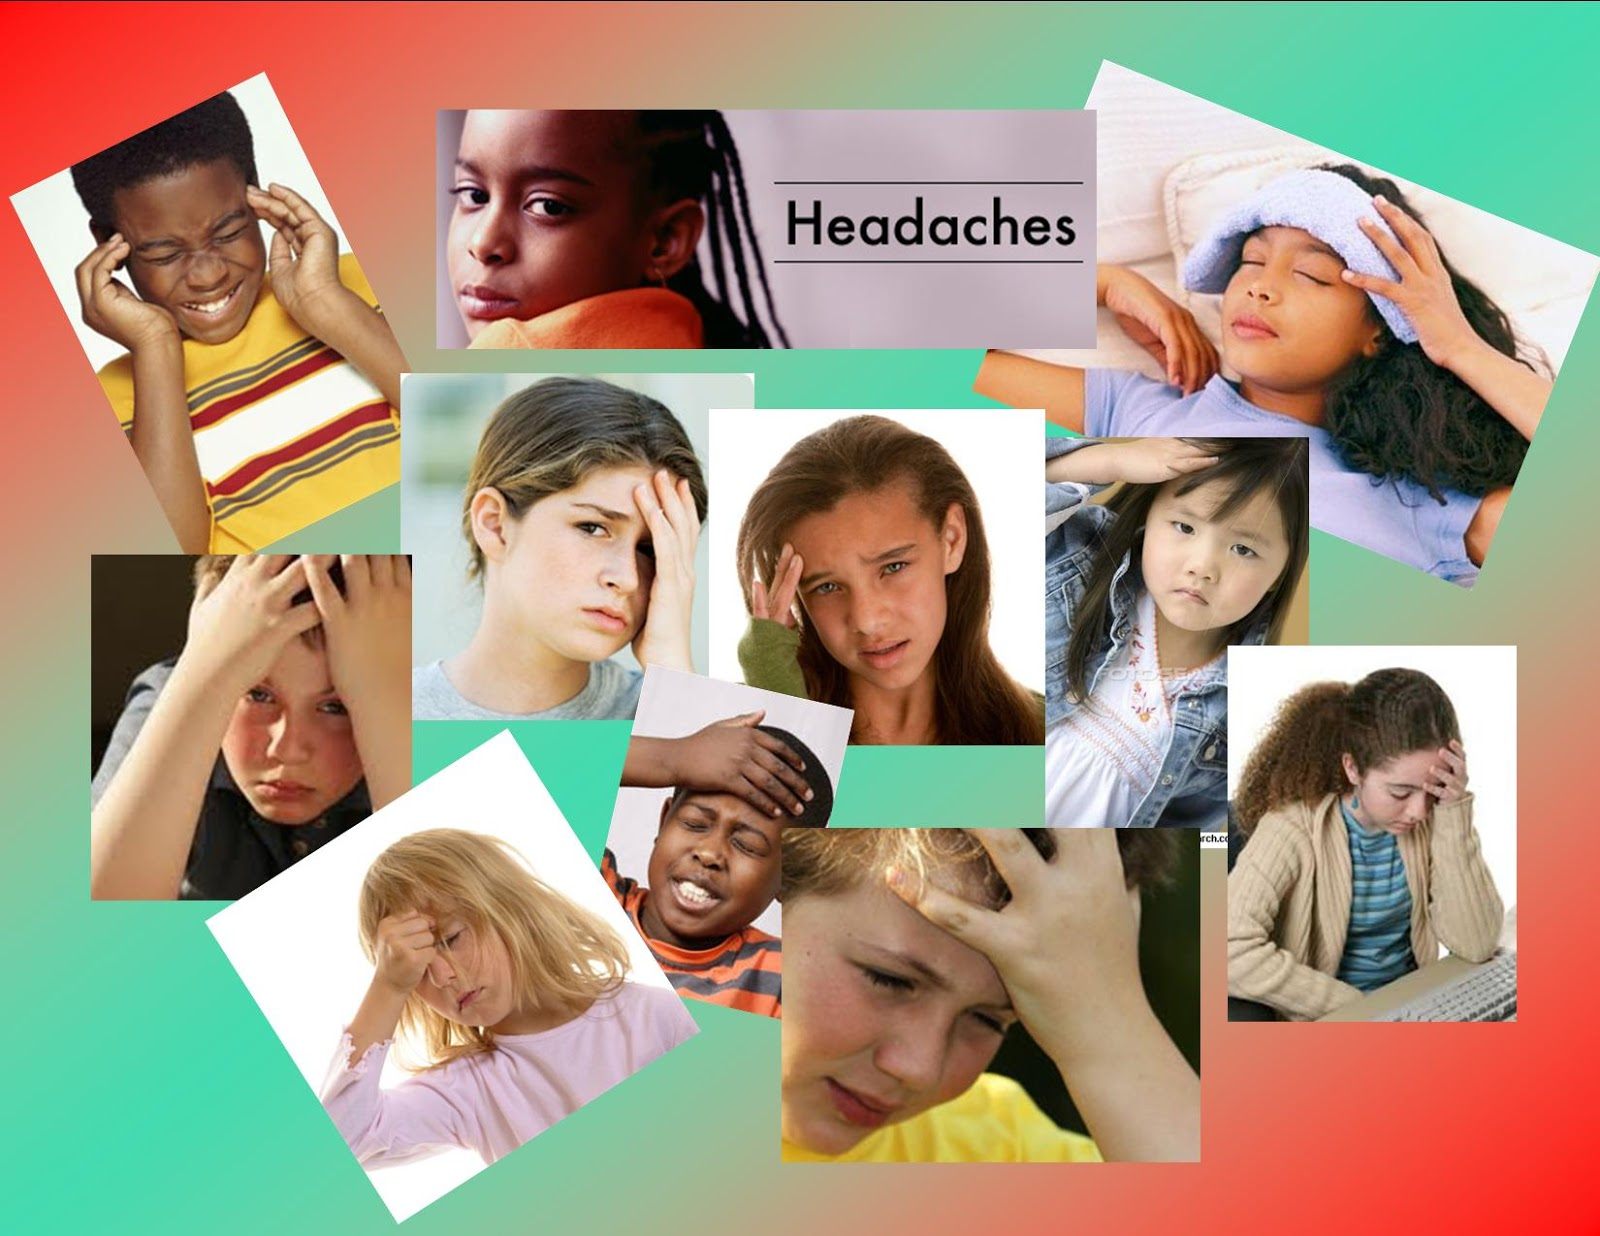 Headaches and kids2